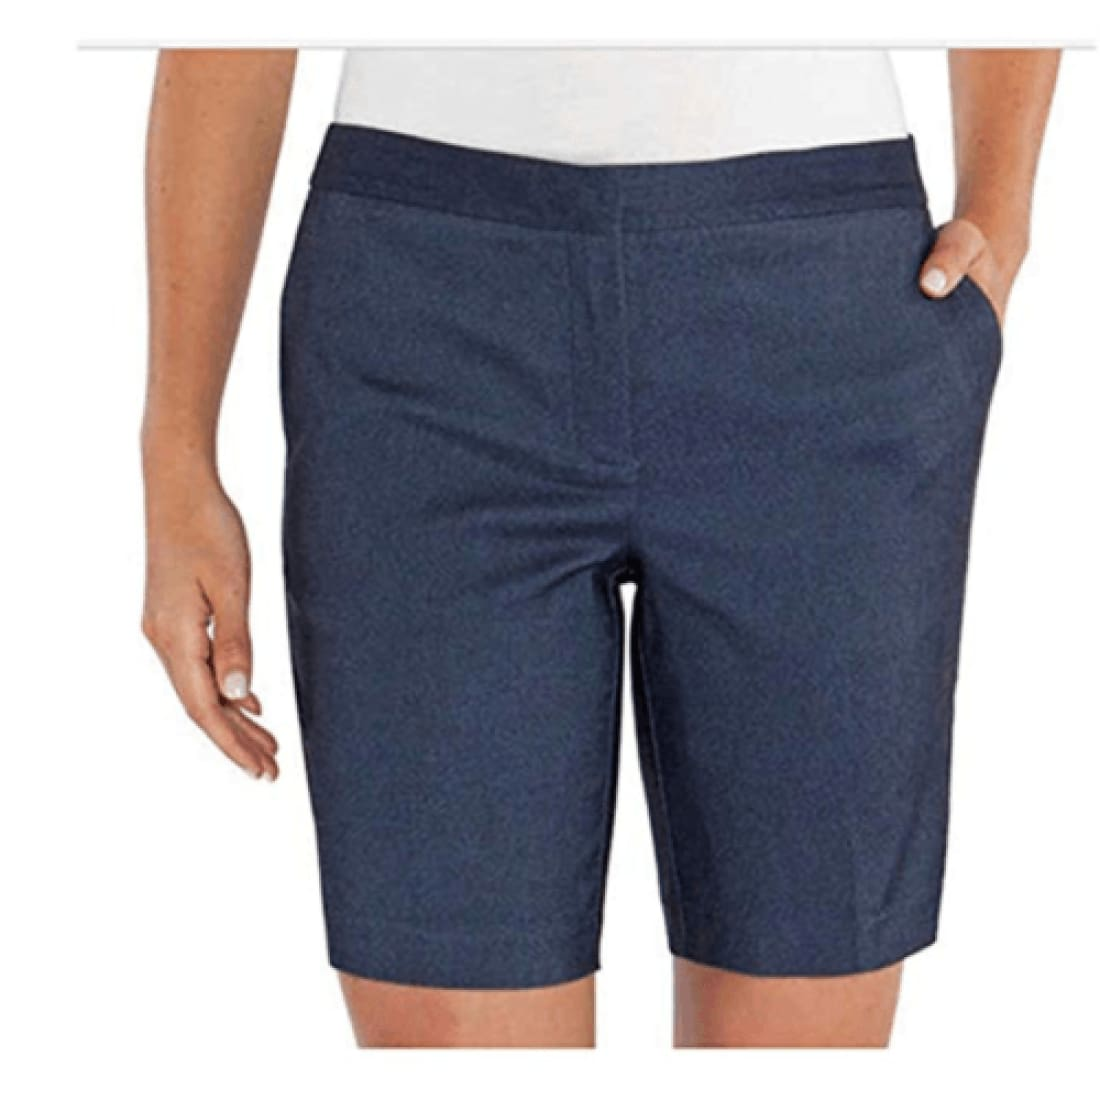 Mario Serrani Womens Italy Comfort Stretch Shorts 4 / Denim (Navy) Pants & Shorts